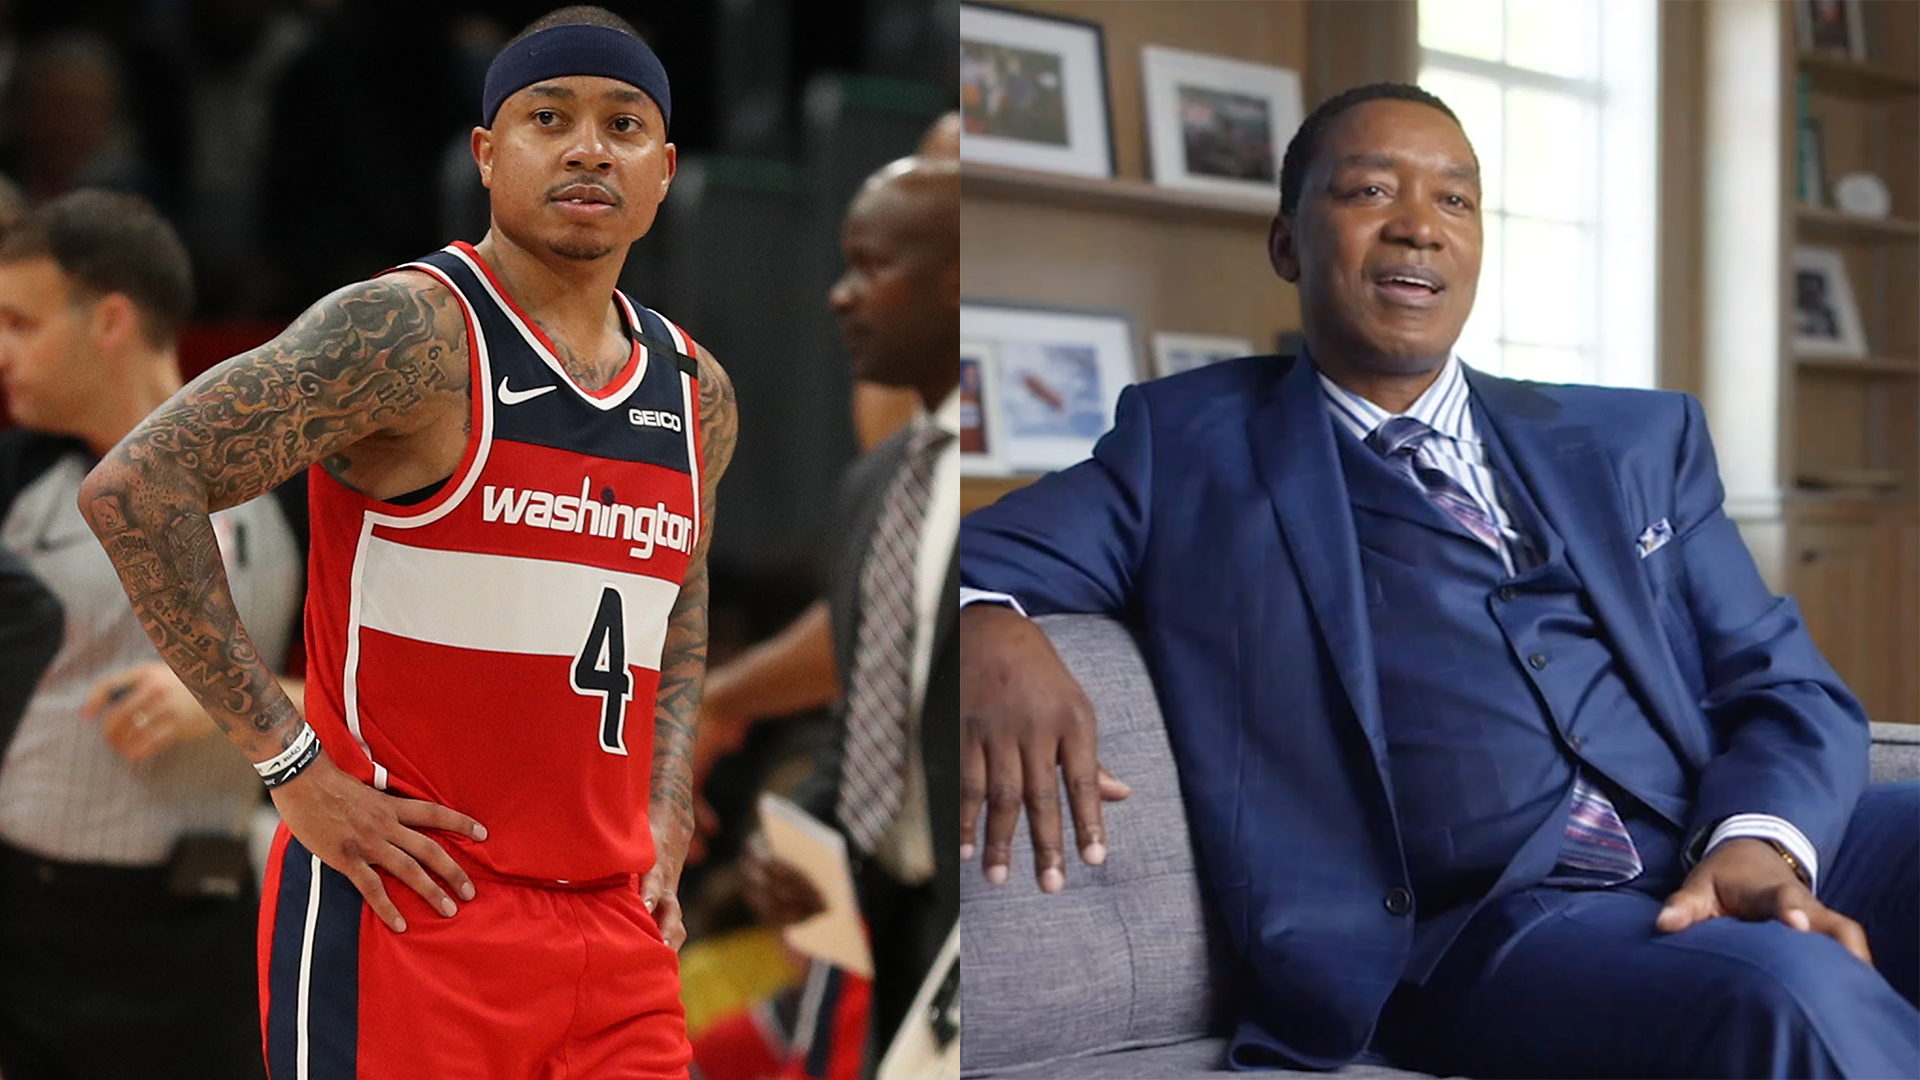 Isaiah Thomas gets hate from 'The Last Dance' viewers who think he's Isiah Thomas 1